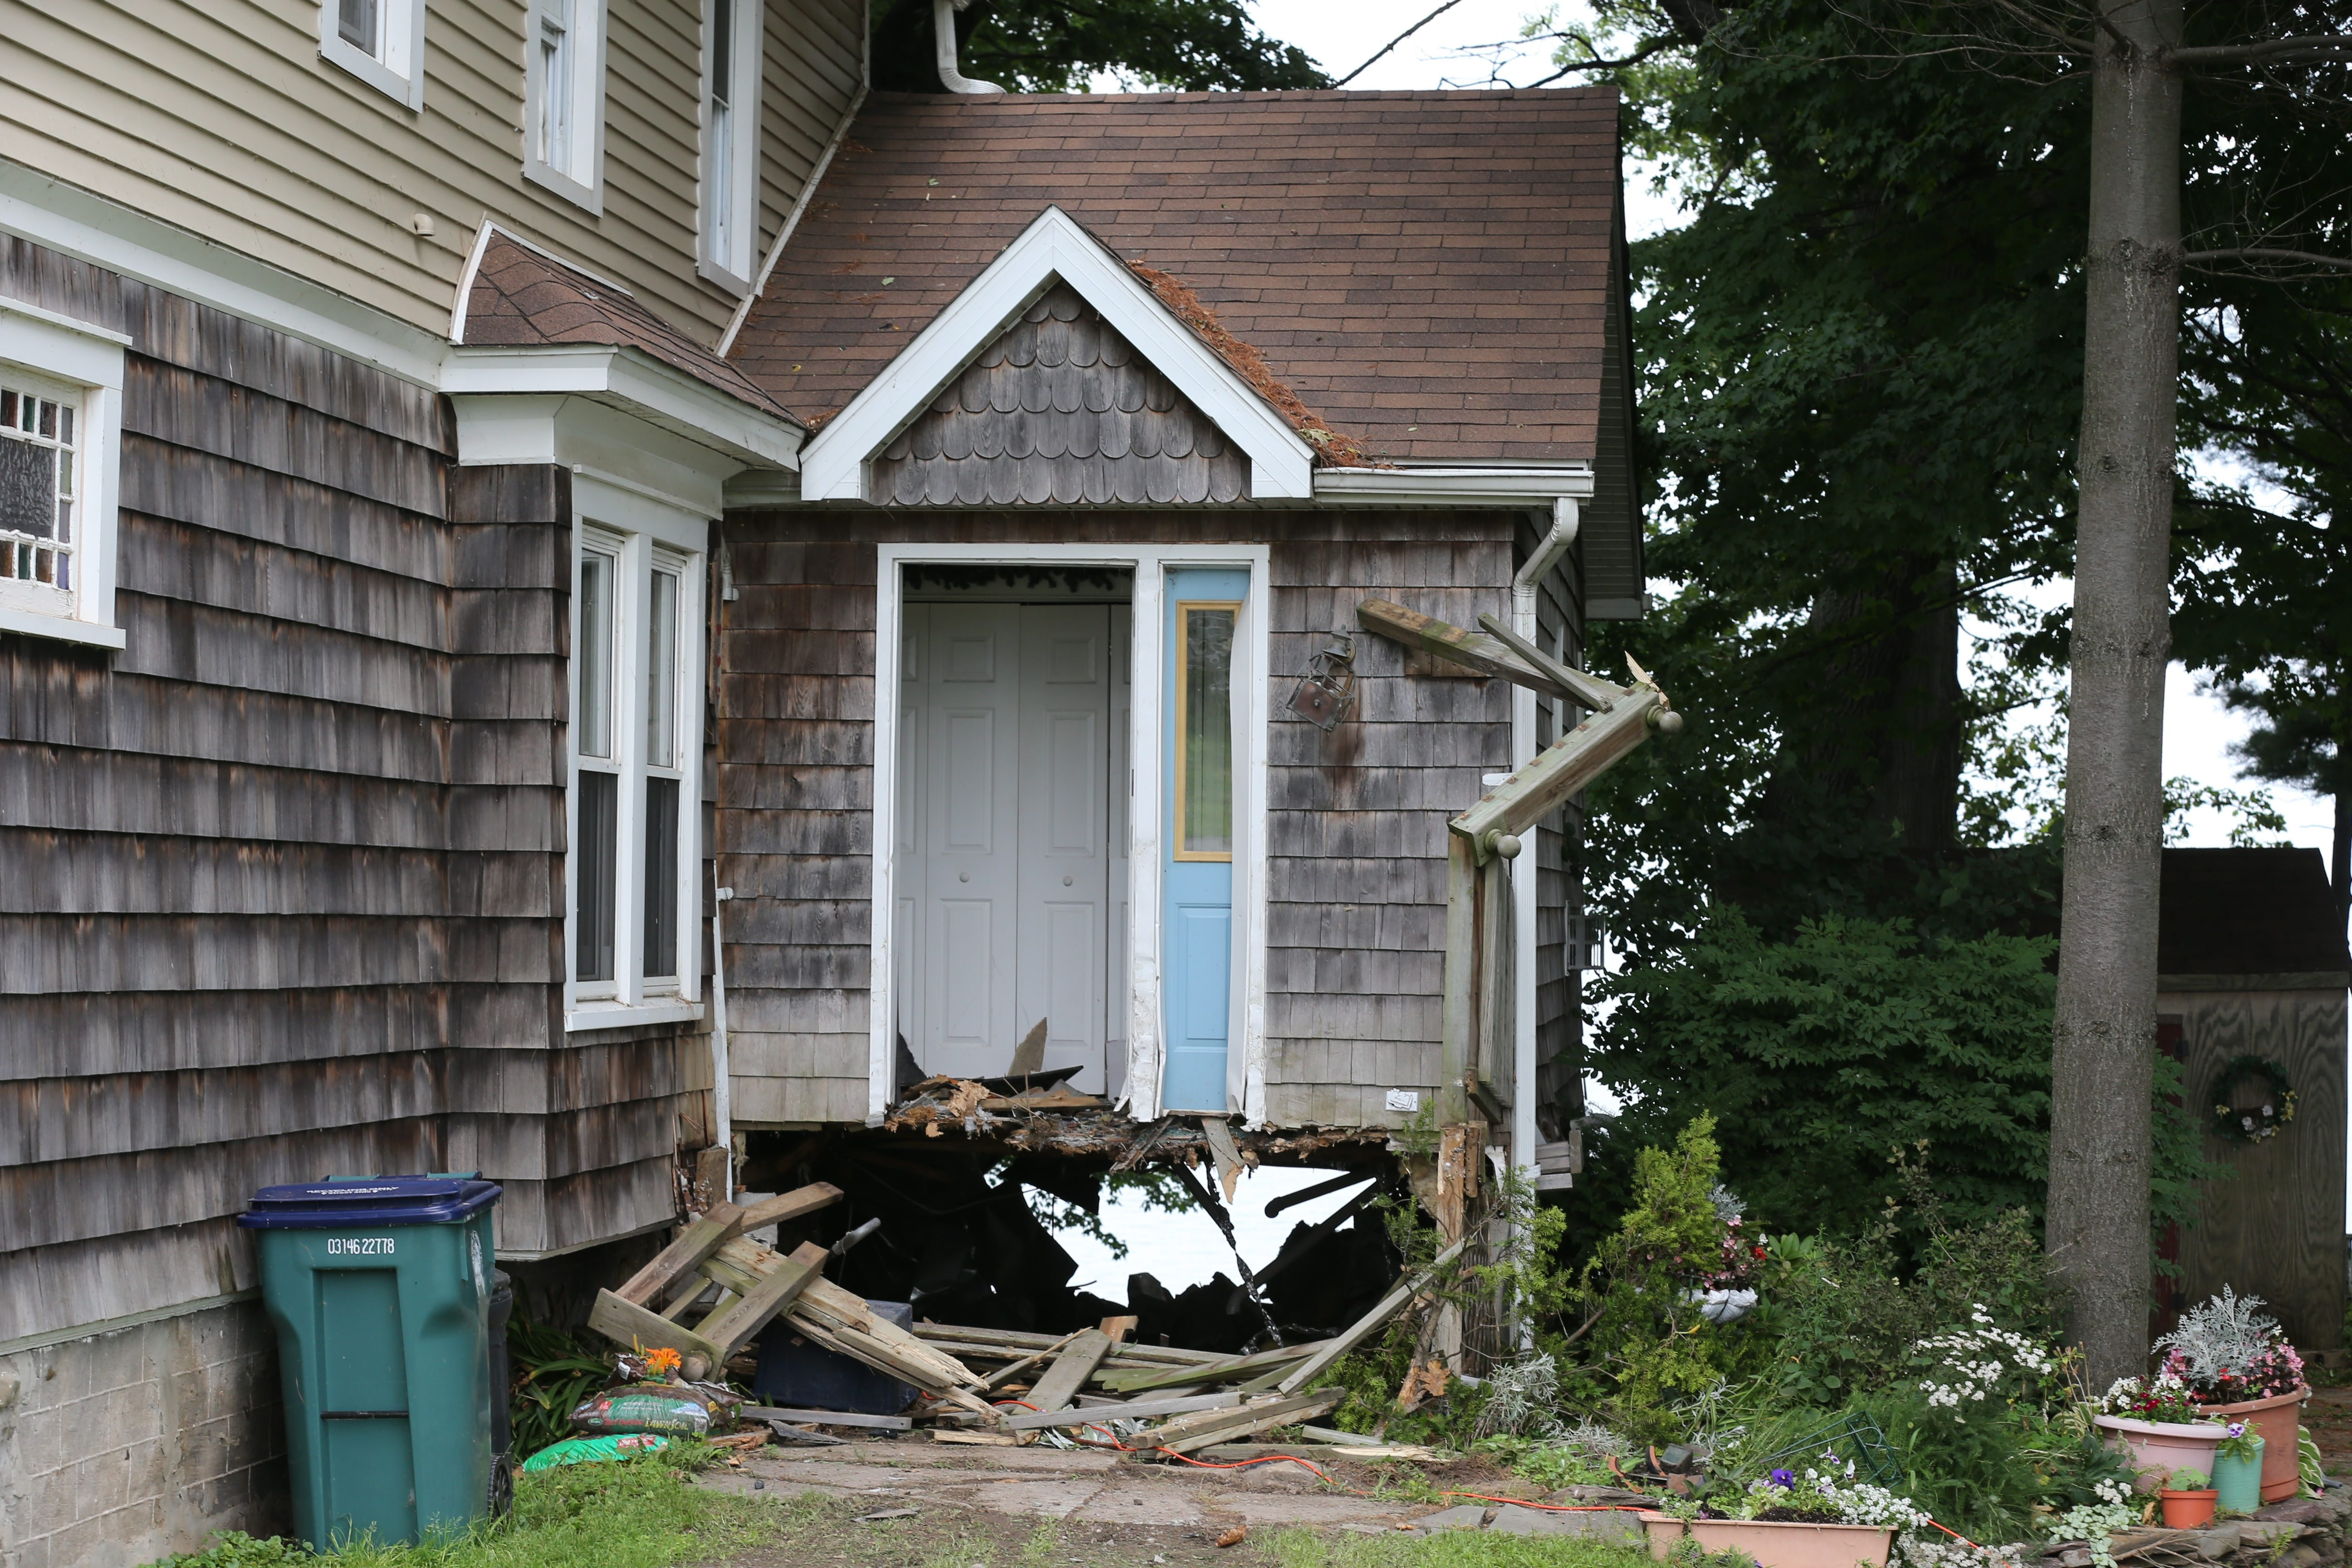 A driver was killed when his Chevrolet Corvette crashed and went through a porch and this home on Route 18 in Burt on Tuesday morning.